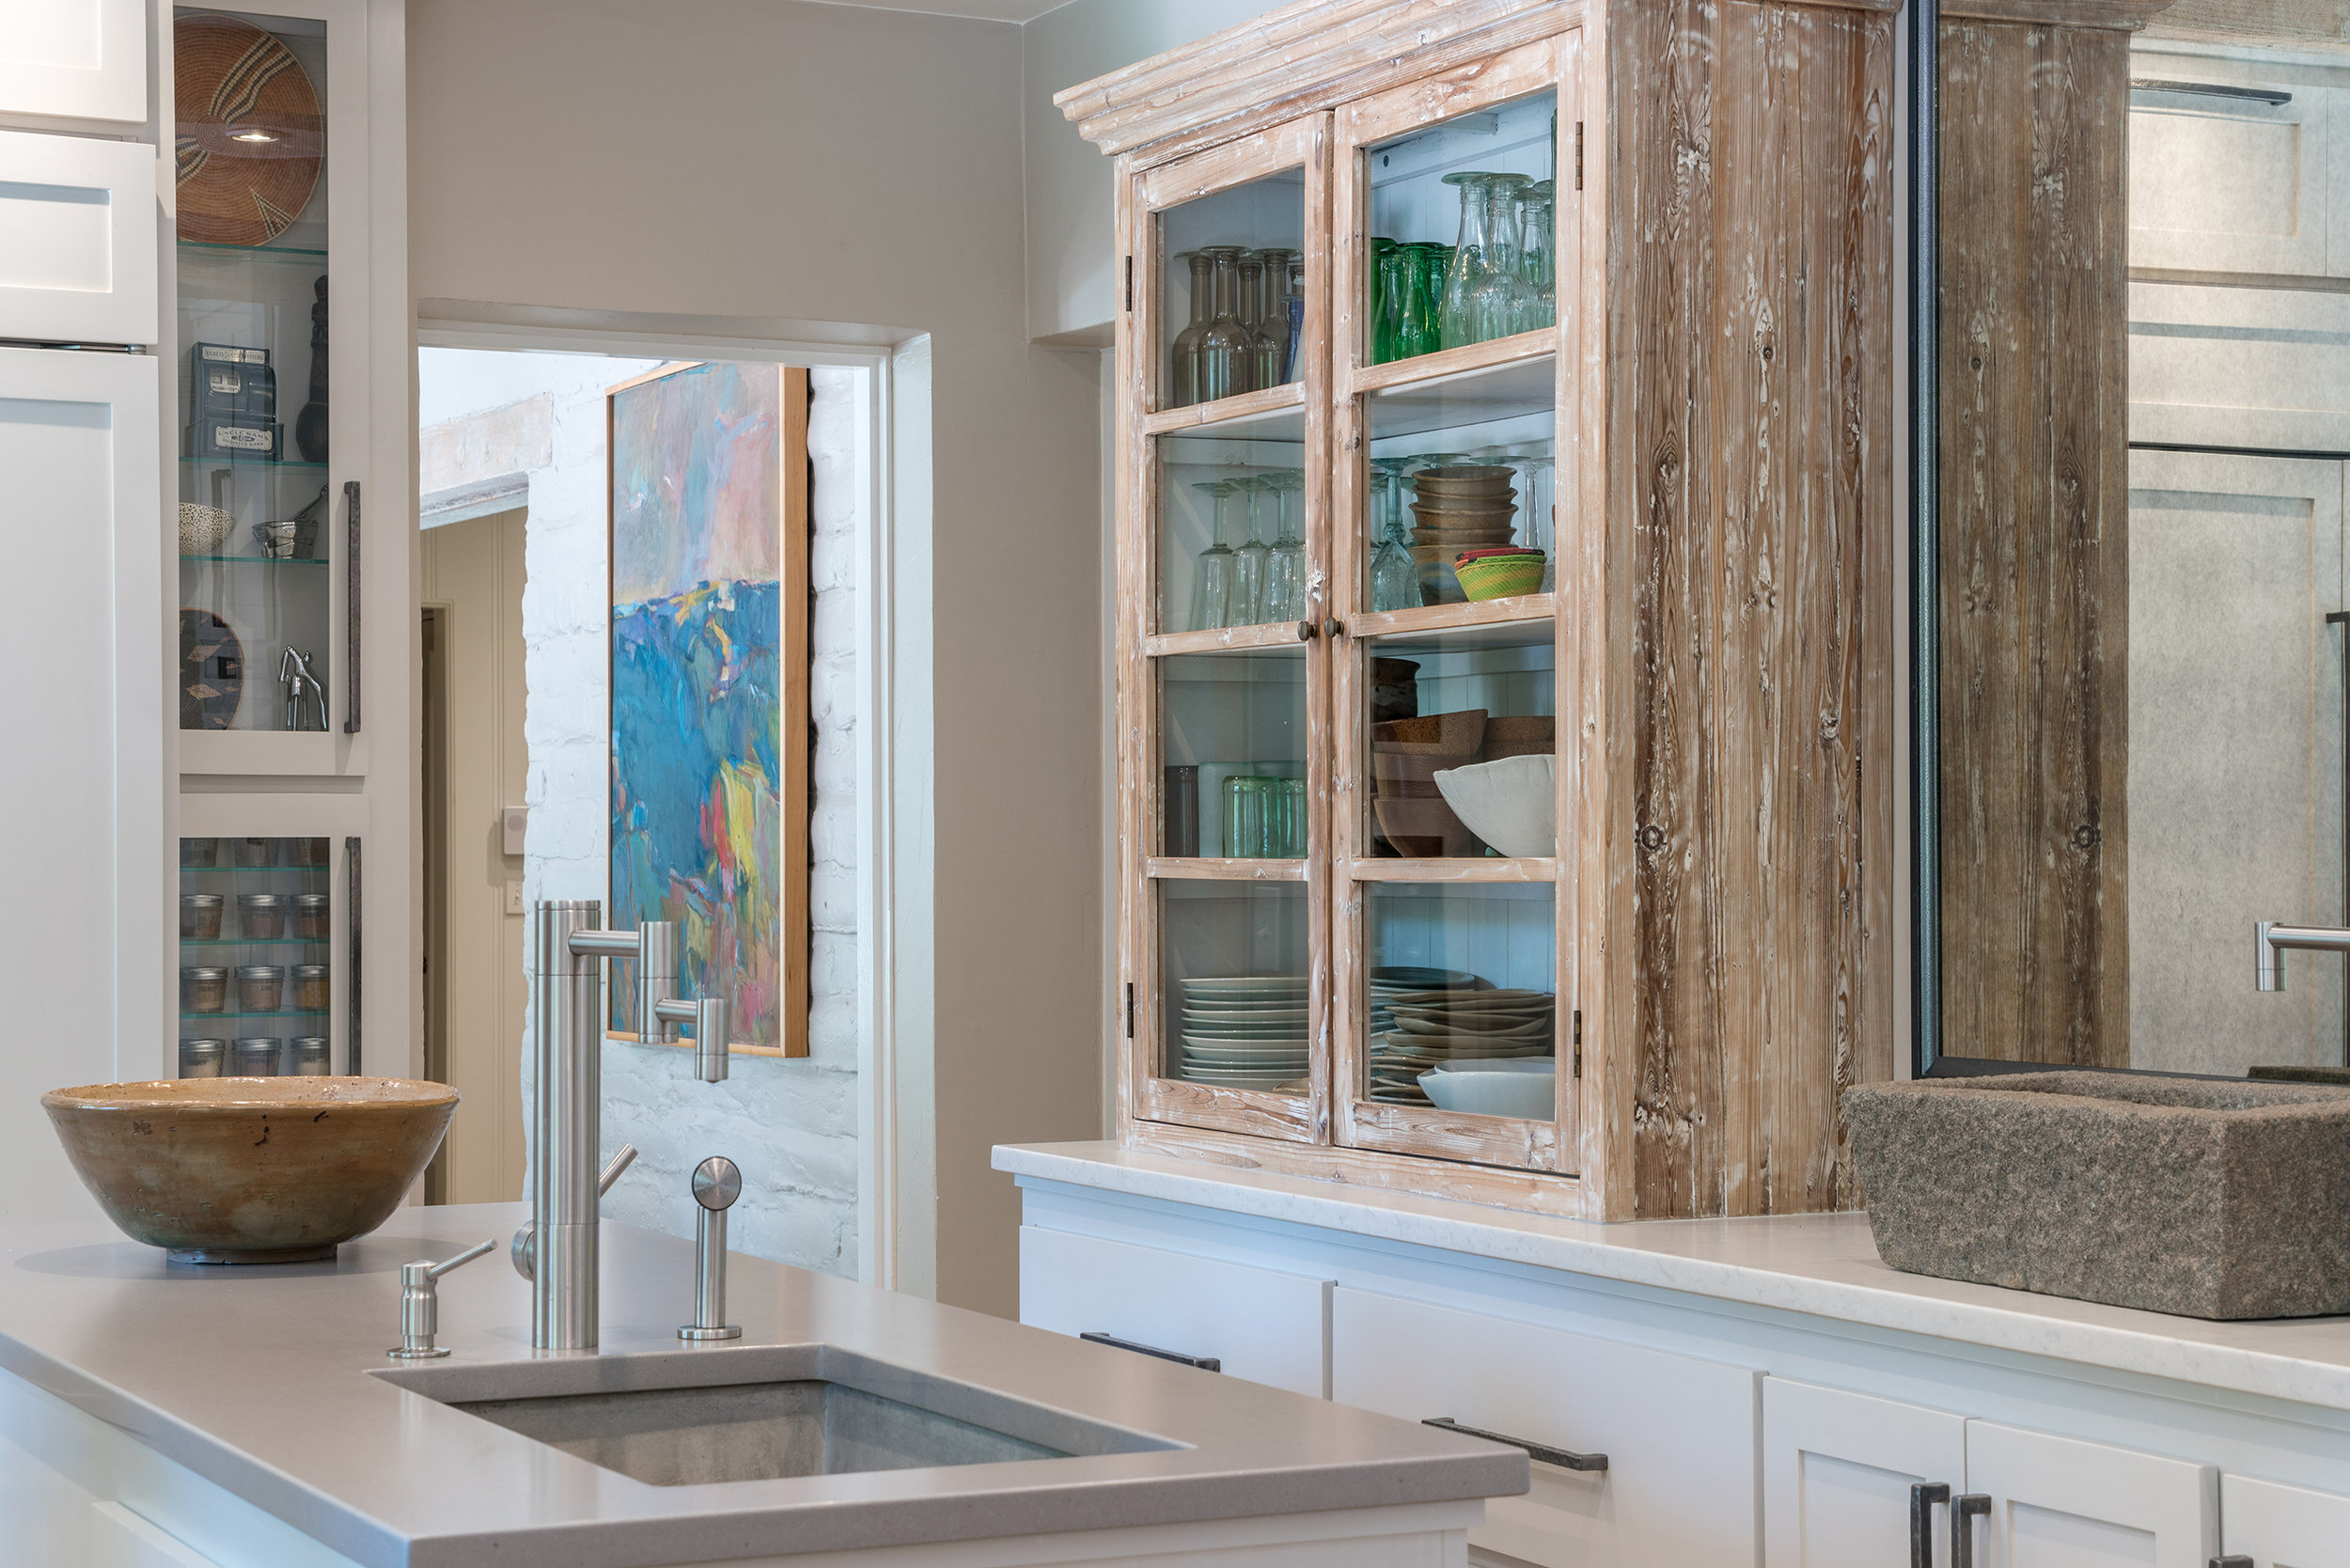 The kitchen is simple and restrained. I balanced elements once again by juxtaposing an old stone vessel sink and a stripped-down old farmhouse cabinet with sleek modern surfaces and appliances. I framed a large, antiqued mirror in iron and placed it across from the windows to bring in reflected light and views of their beautiful backyard.